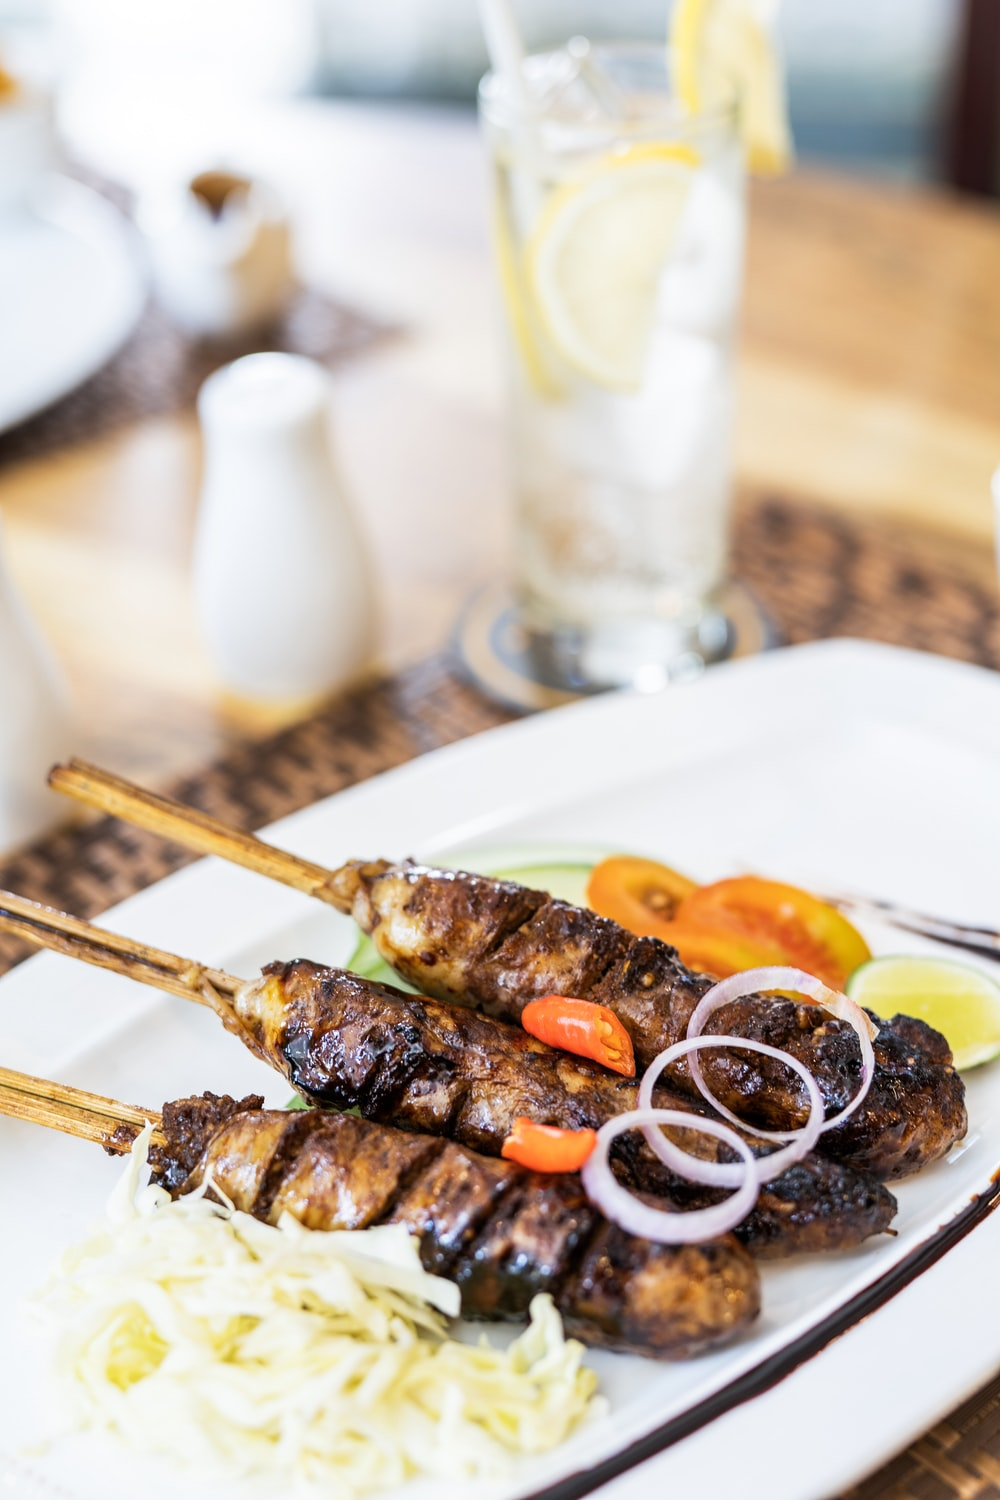 grilled meat with sauce on white ceramic plate